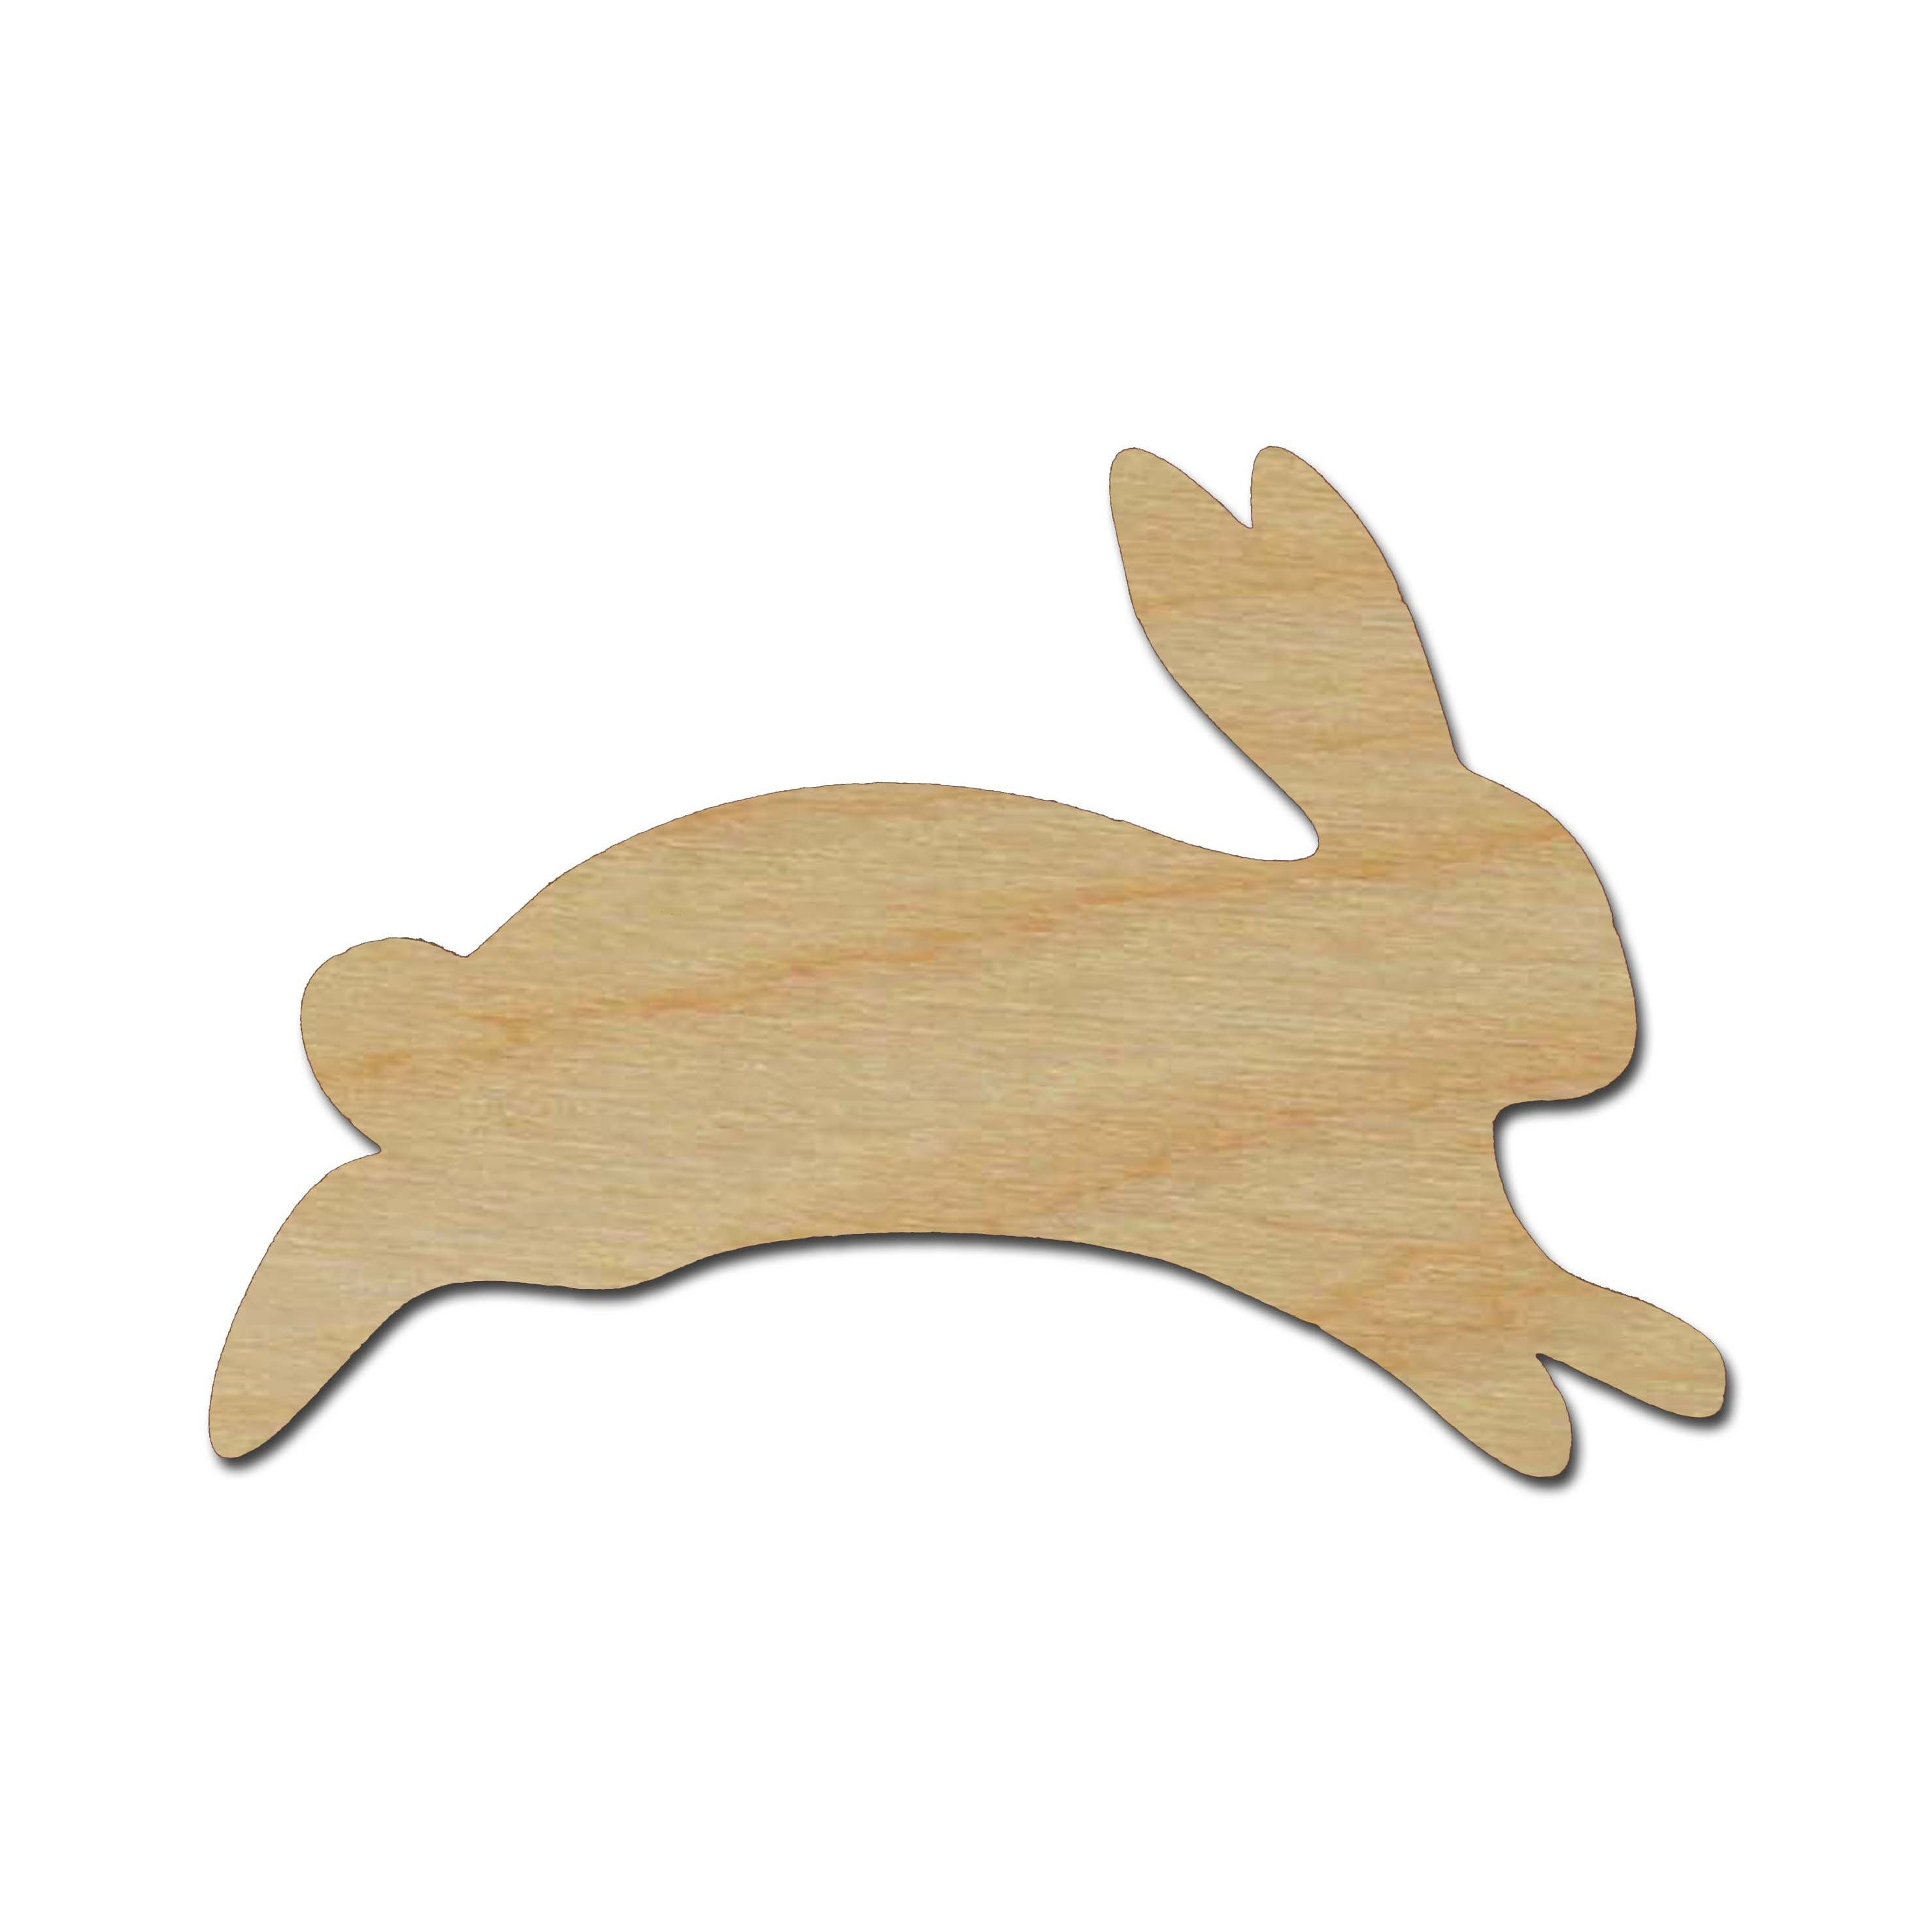 Bunny Rabbit Easter Peep Spring Blank Wood Shape Craft Supply Cottontail